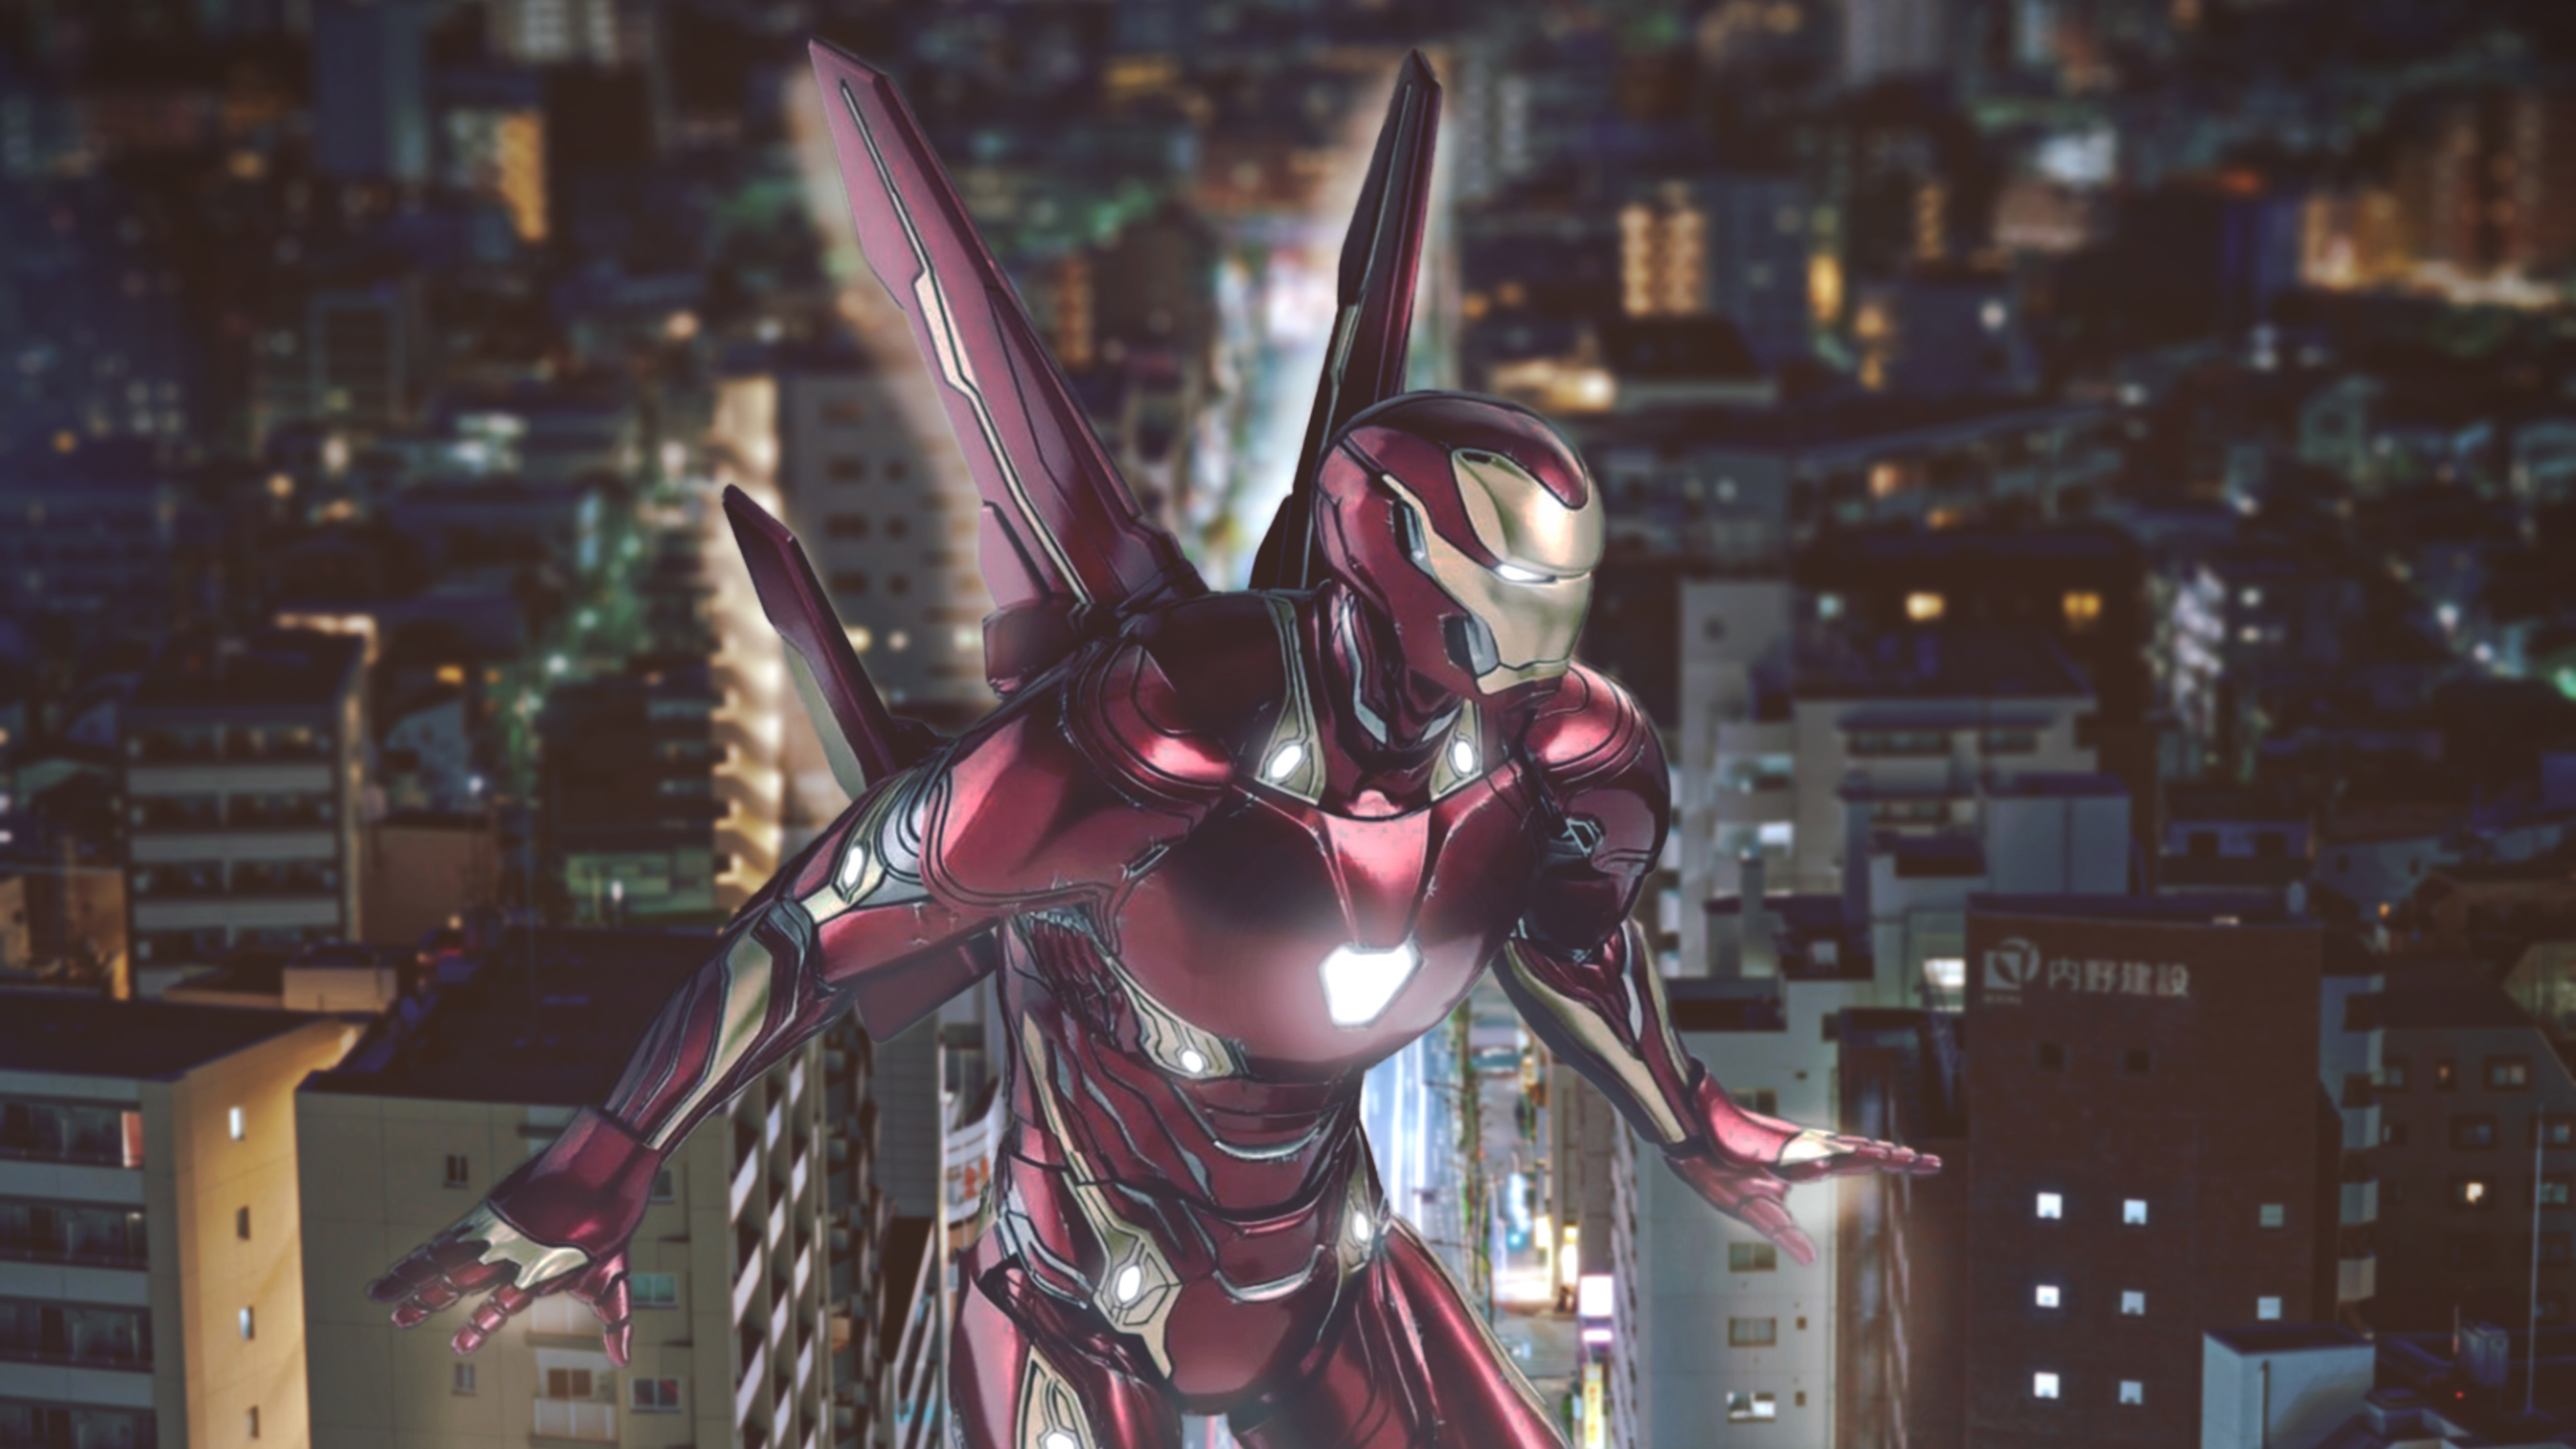 iron man with wings 1565053240 - Iron Man With Wings - superheroes wallpapers, iron man wallpapers, hd-wallpapers, behance wallpapers, 4k-wallpapers